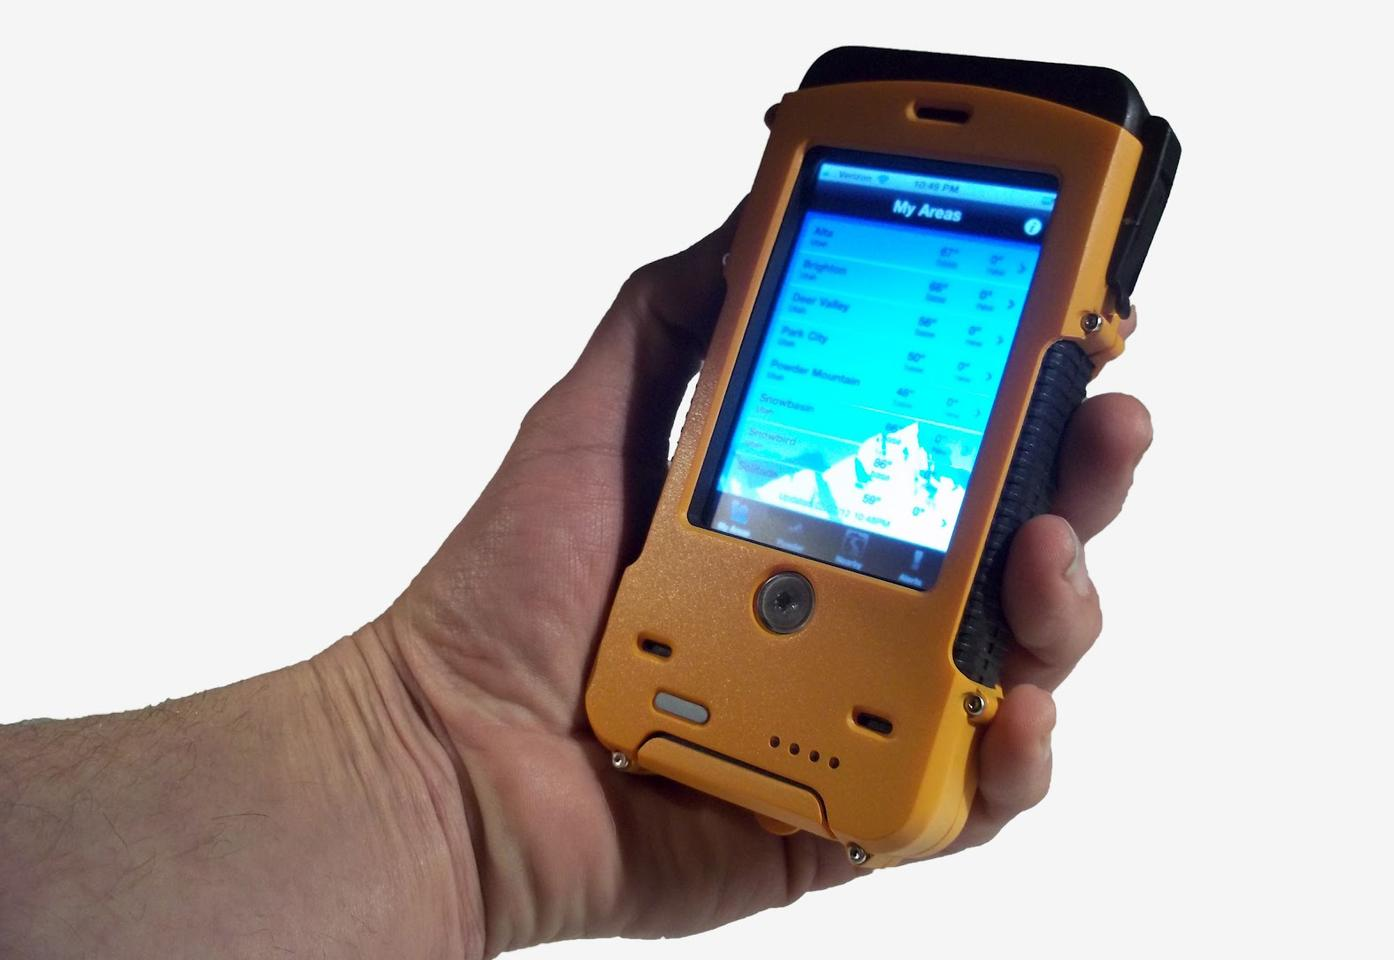 The AQUA TEK S case adds some bulk but is ruggedized, dust resistant and waterproof